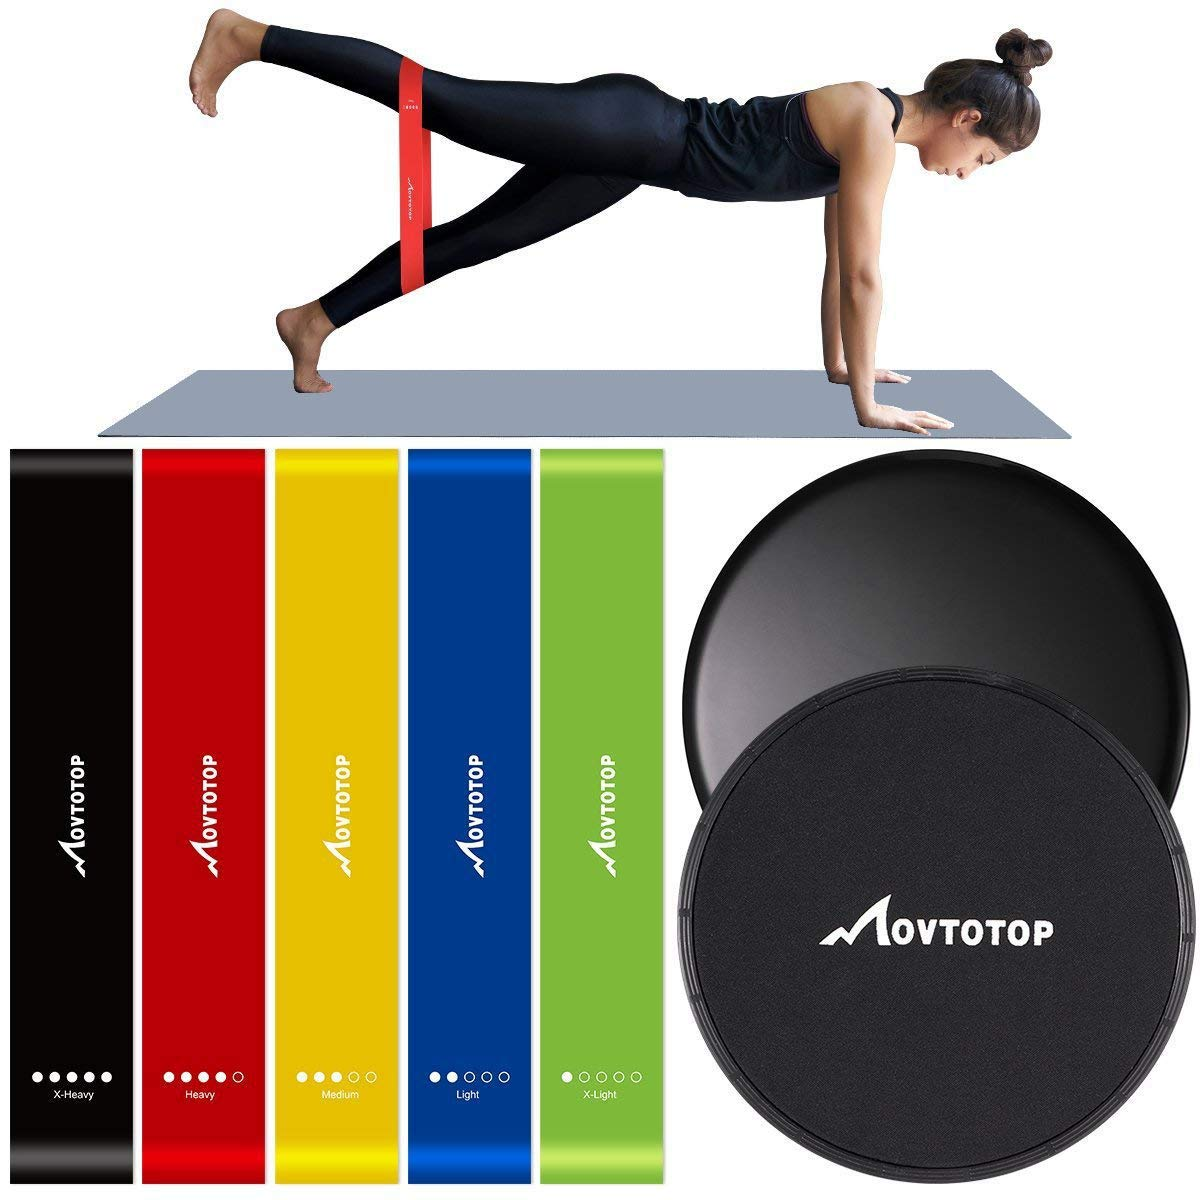 MOVTOTOP Resistance Bands and Core sliders-Set of 7- Professional Exercise Bands for Legs and Butt, Arms and Shoulders, Portable Workout loops for Women Men Fitness Yoga